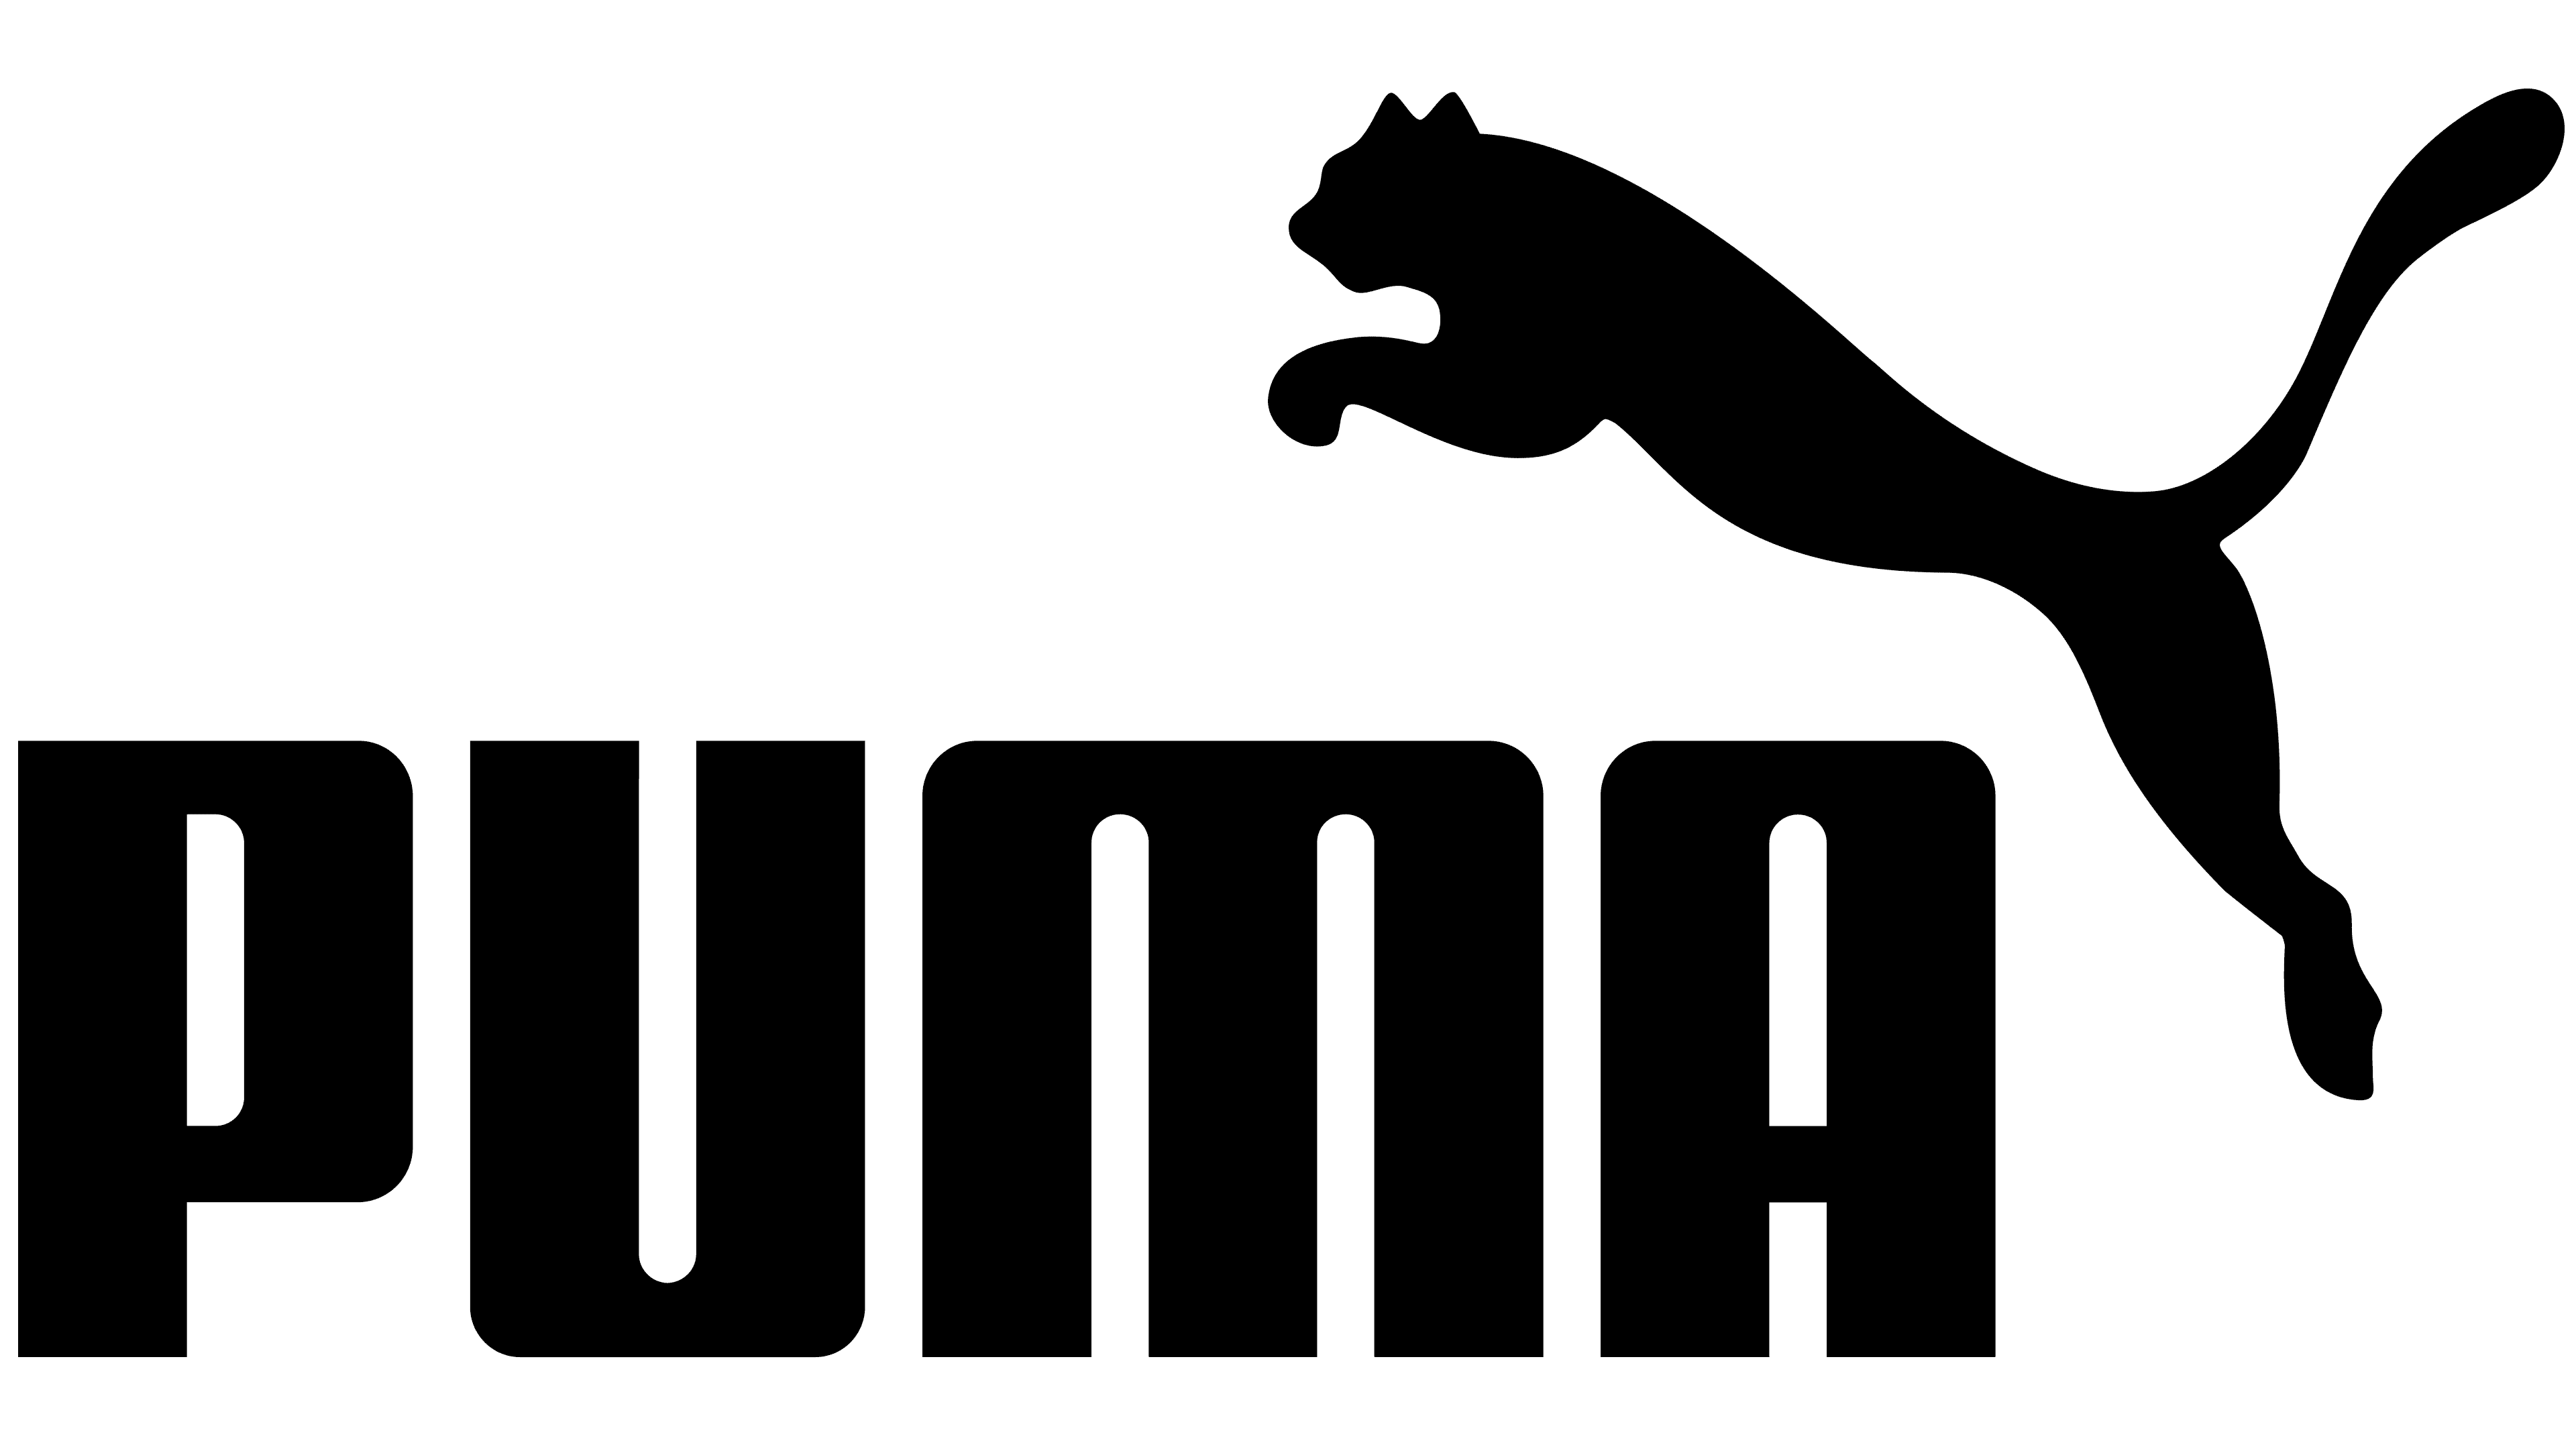 puma logo history the most famous brands and company logos in the world puma logo history the most famous